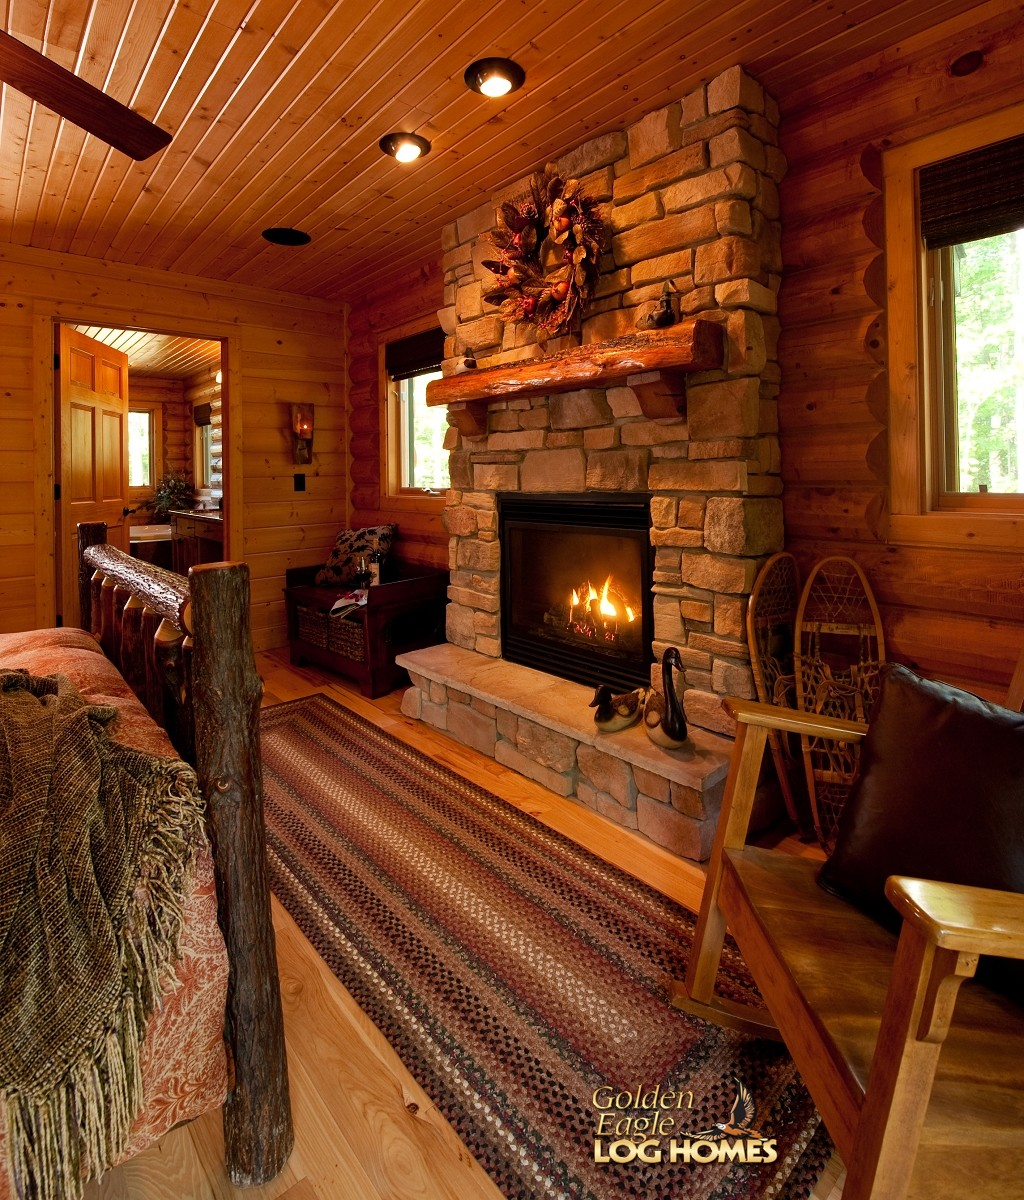 Rustic Bathroom Vanity Golden Eagle Log And Timber Homes: Log Home / Cabin